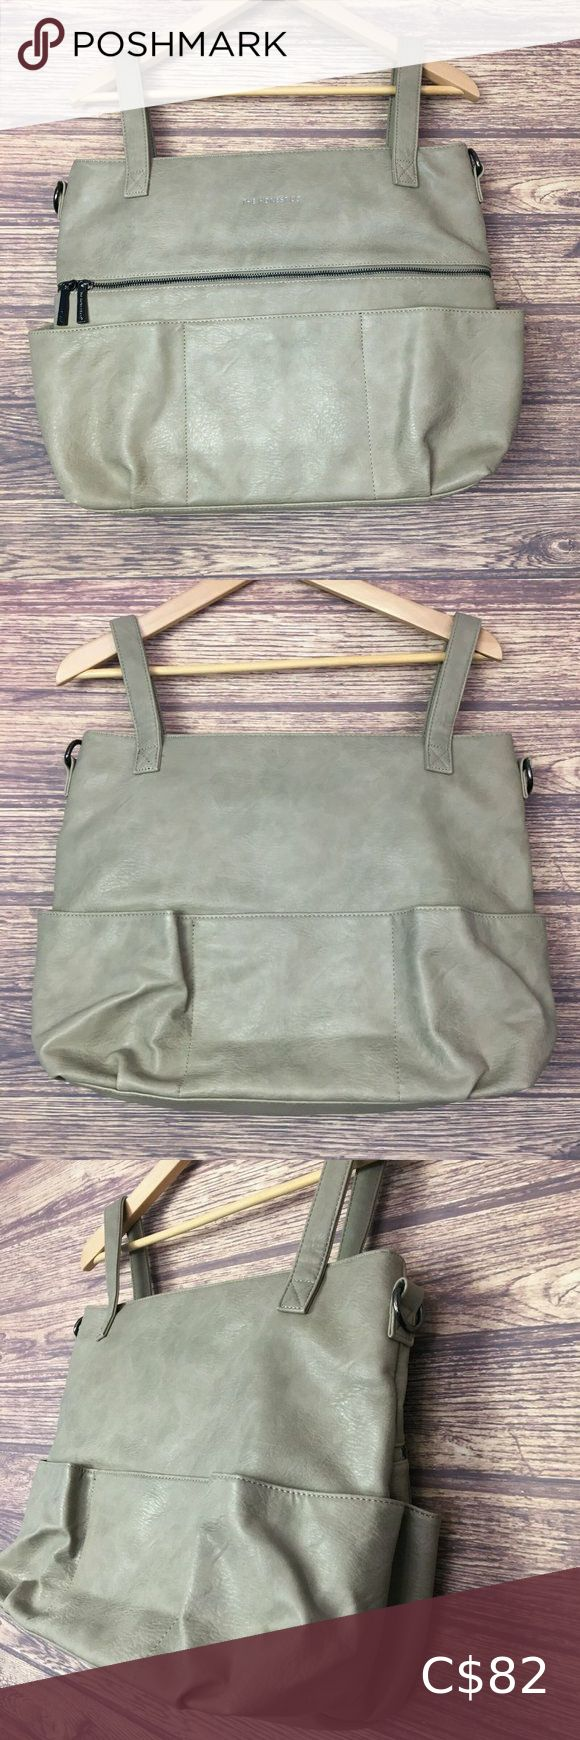 The Honest Co. Travel Maternity Baby Diaper Bag Women's The Honest Co. Travel Maternity Baby Handbag Diaper Tote Bag. Featuring 1 interior insulated pockets and 6 exterior pockets. Color Gray. Excellent like new condition. See photos for full details.  Measurements:    Overall Length: 14